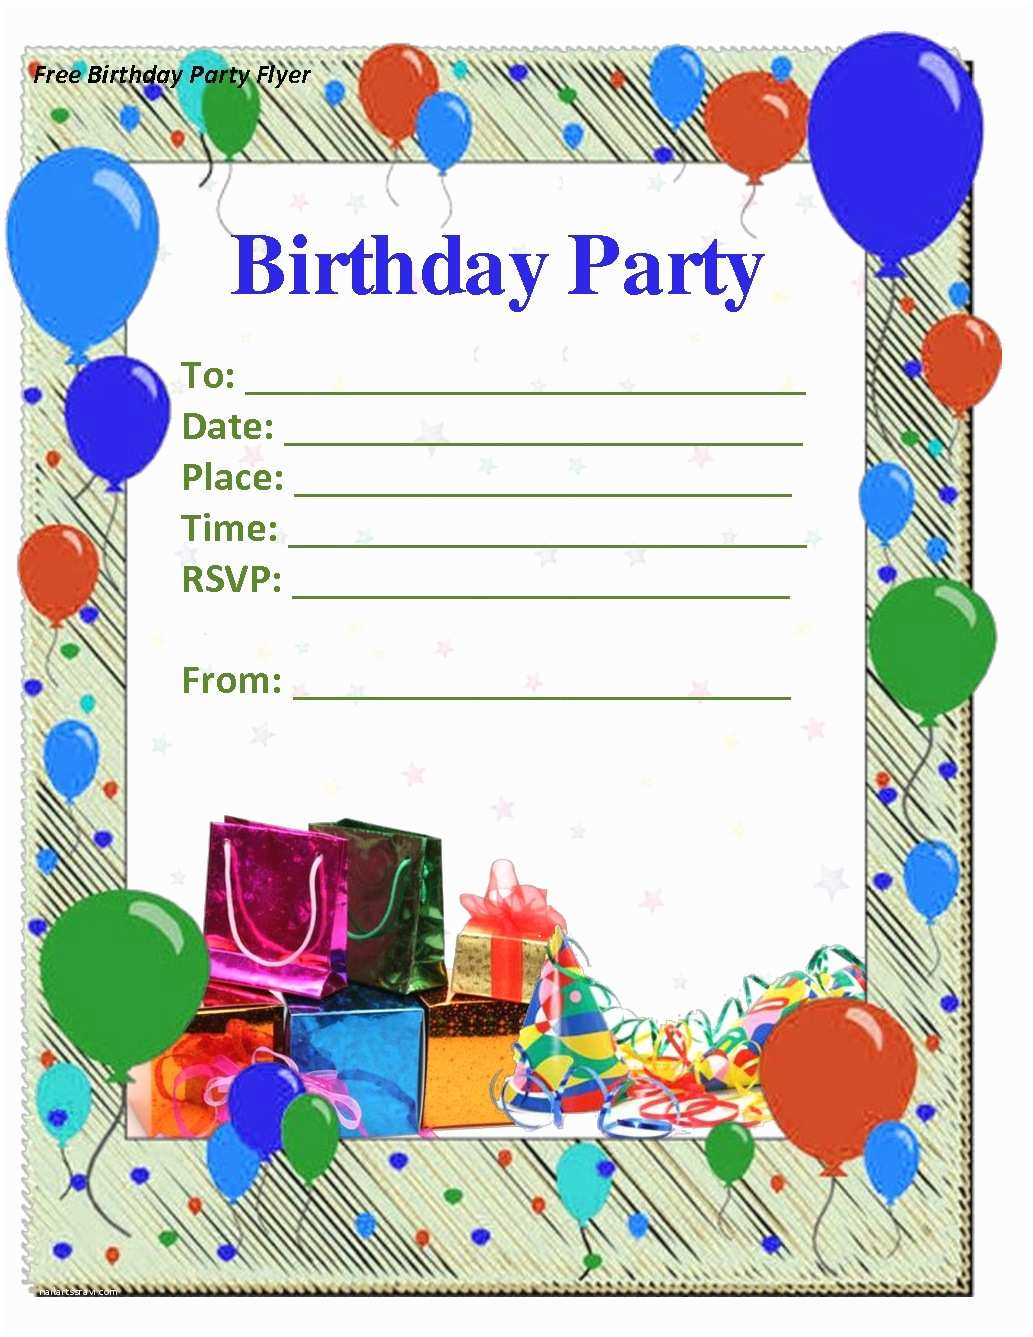 Birthday Party Invitations 50 Free Birthday Invitation Templates – You Will Love